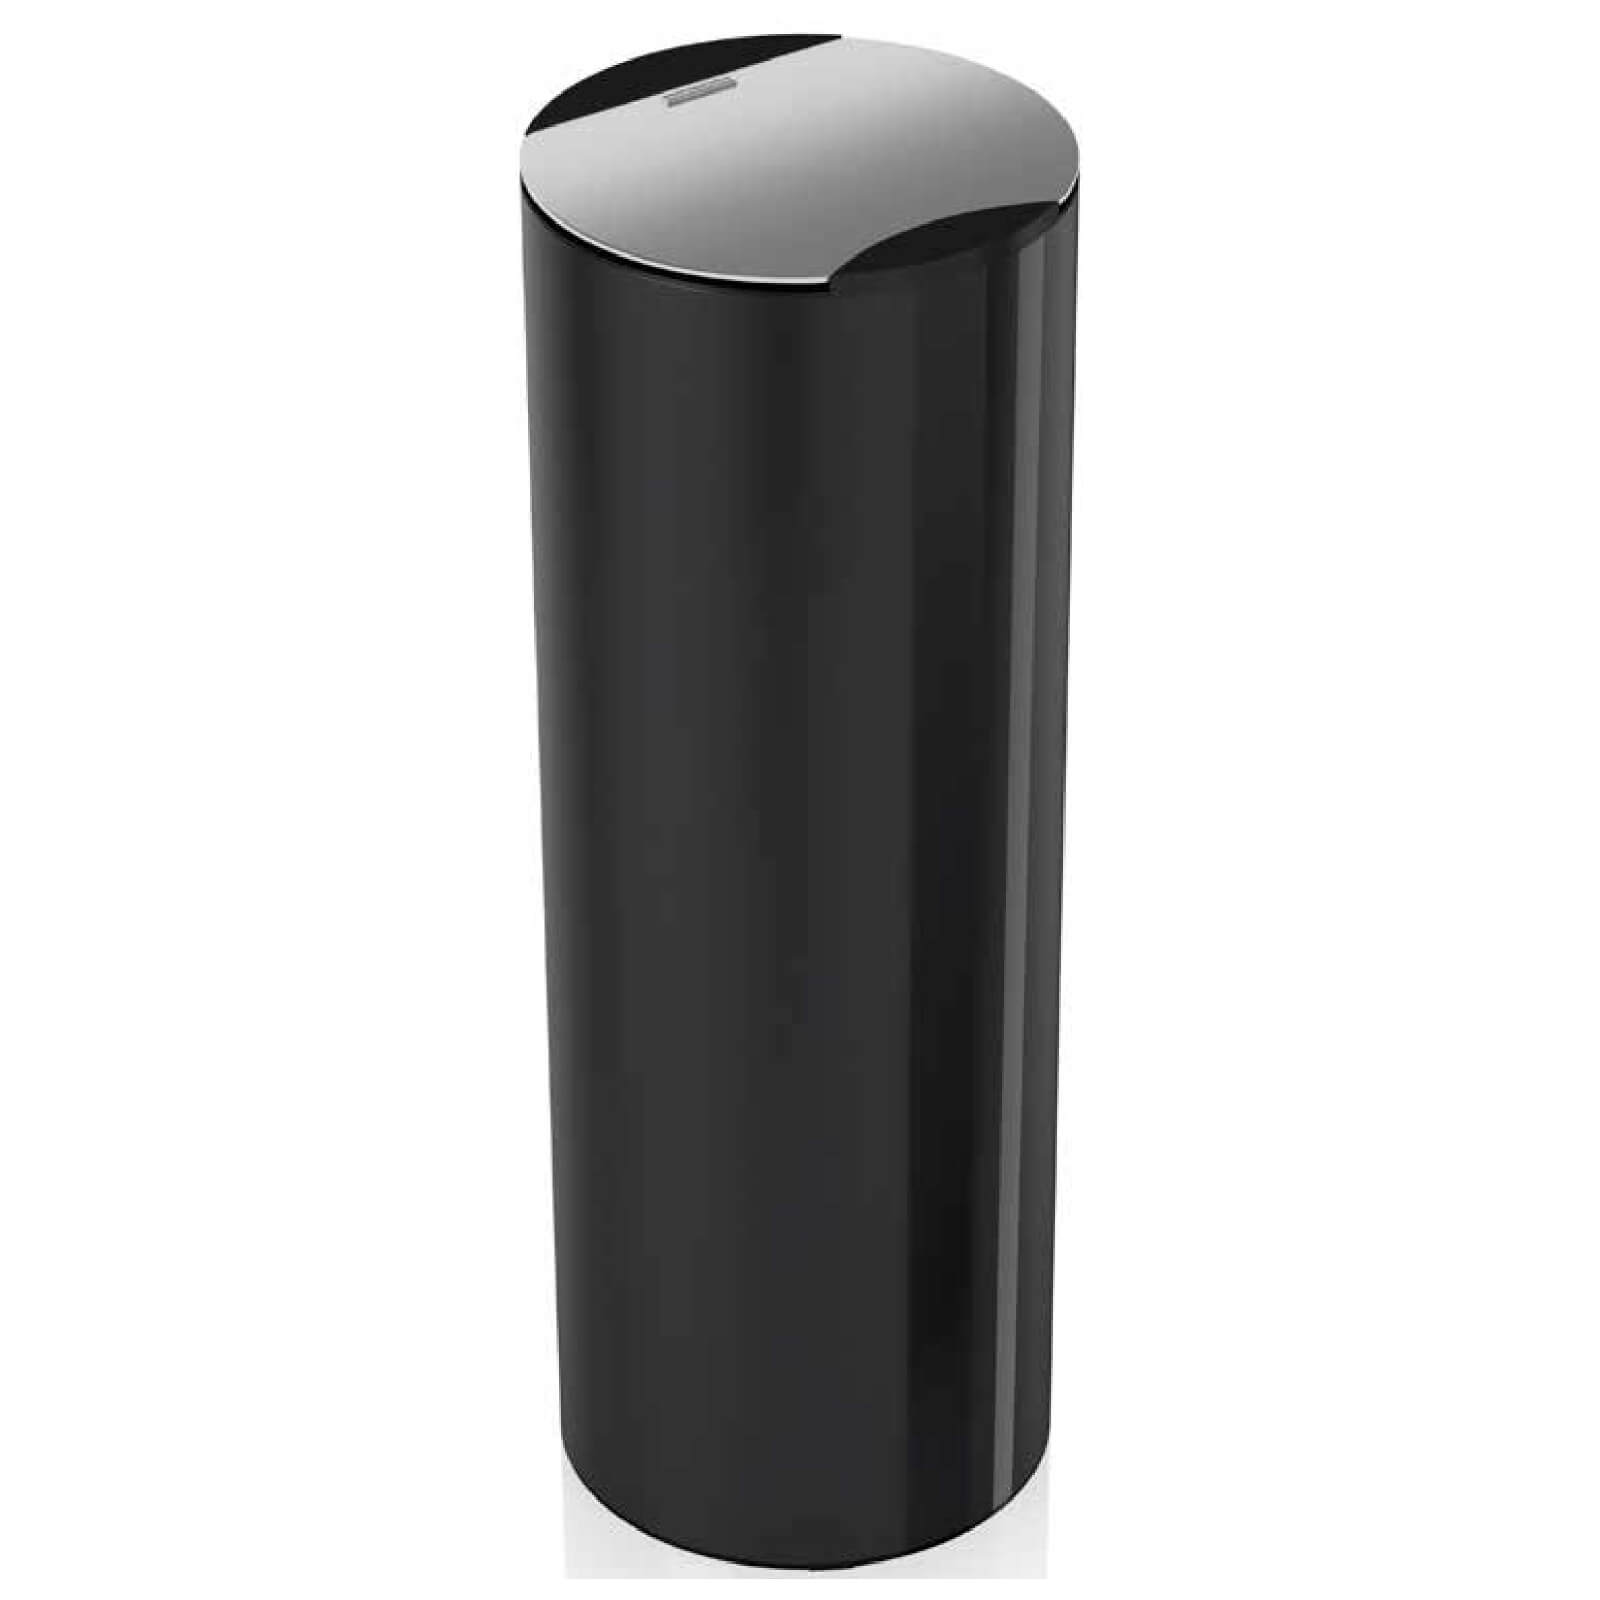 Morphy Richards 972173 Aspect 50L Round Sensor Bin - Black